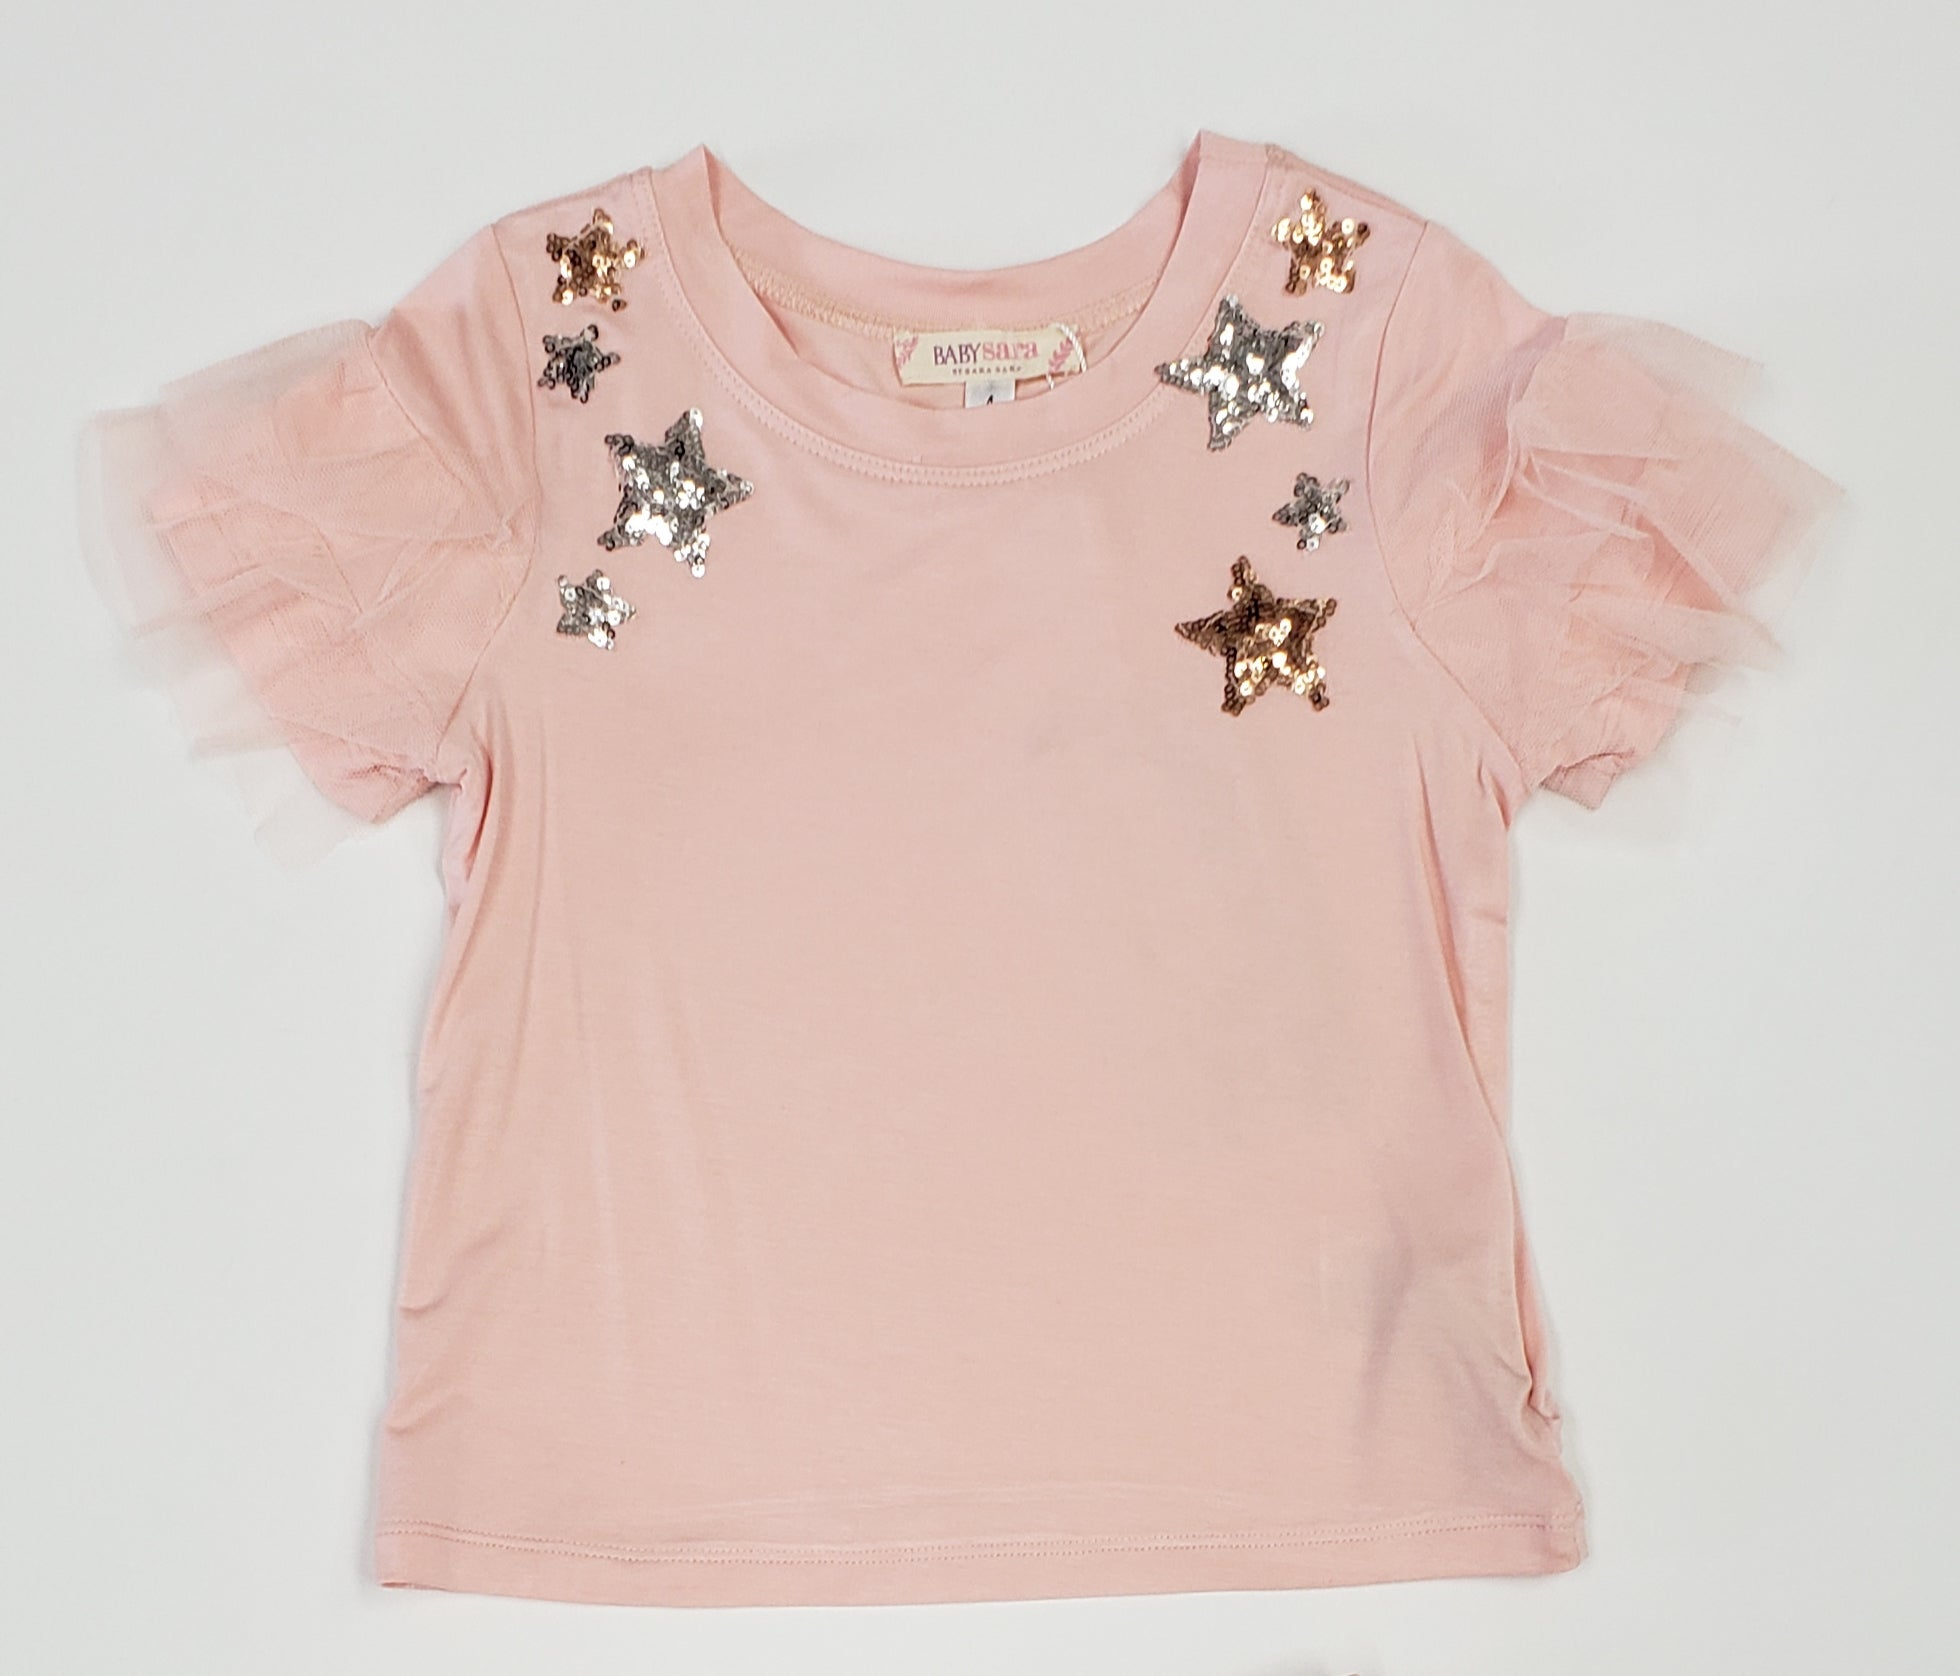 Girls pink top